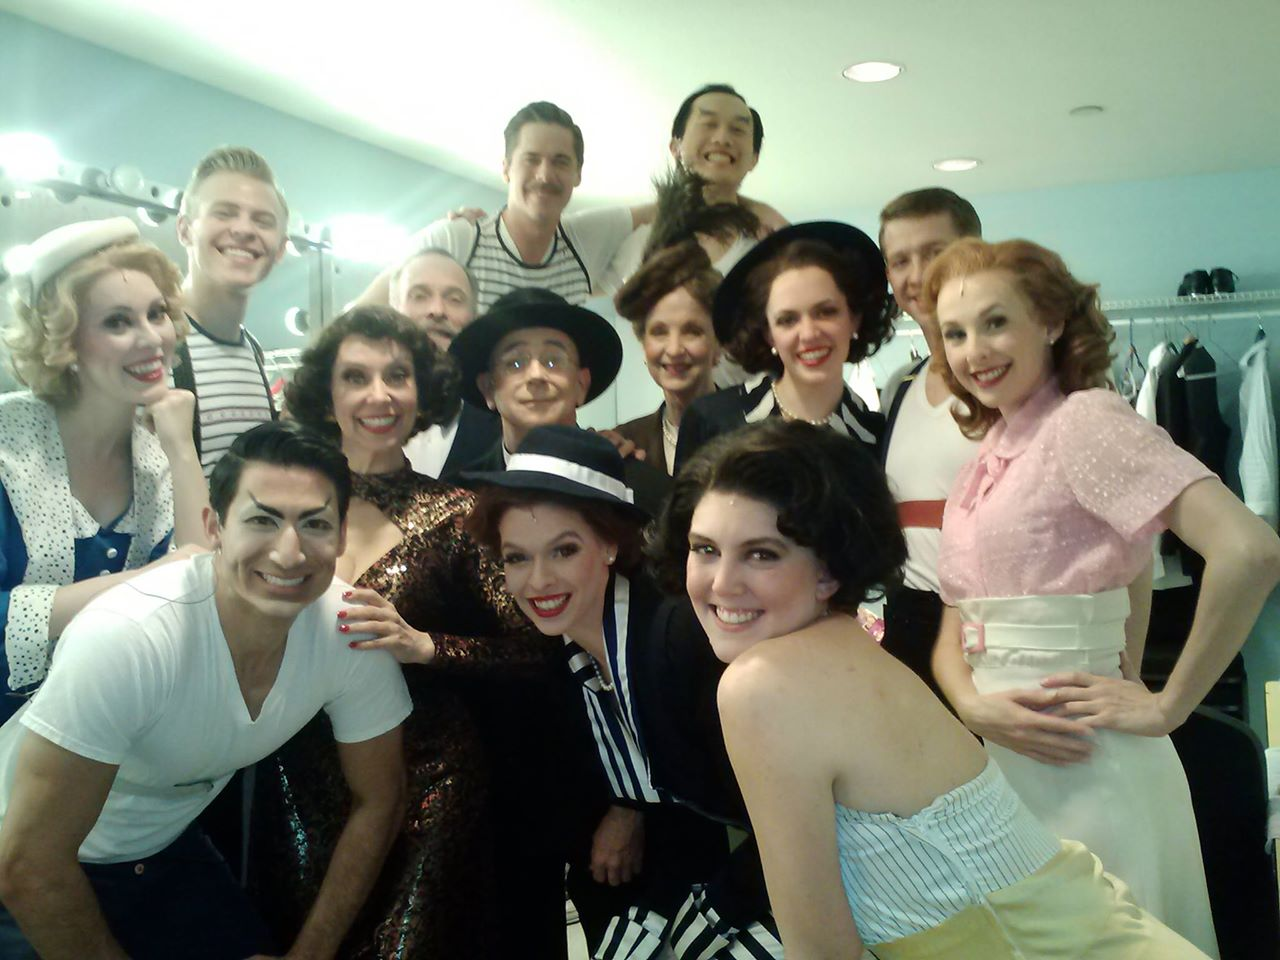 "Backstage with the cast of ""Anything Goes"" at Phoenix Theatre (2015). Photo from David Barker's Facebook collection. Among those pictured: Ashley Stults, Cooper Hallstrom, Nikko Kimzin, Debby Rosenthal, Jon Gentry, Nic Bryan, Kate E Cook, Christy Welty, Charles Pang, Shelby Jensen, Claire Flatz, Ryan David Kleinman and Trisha Ditsworth."